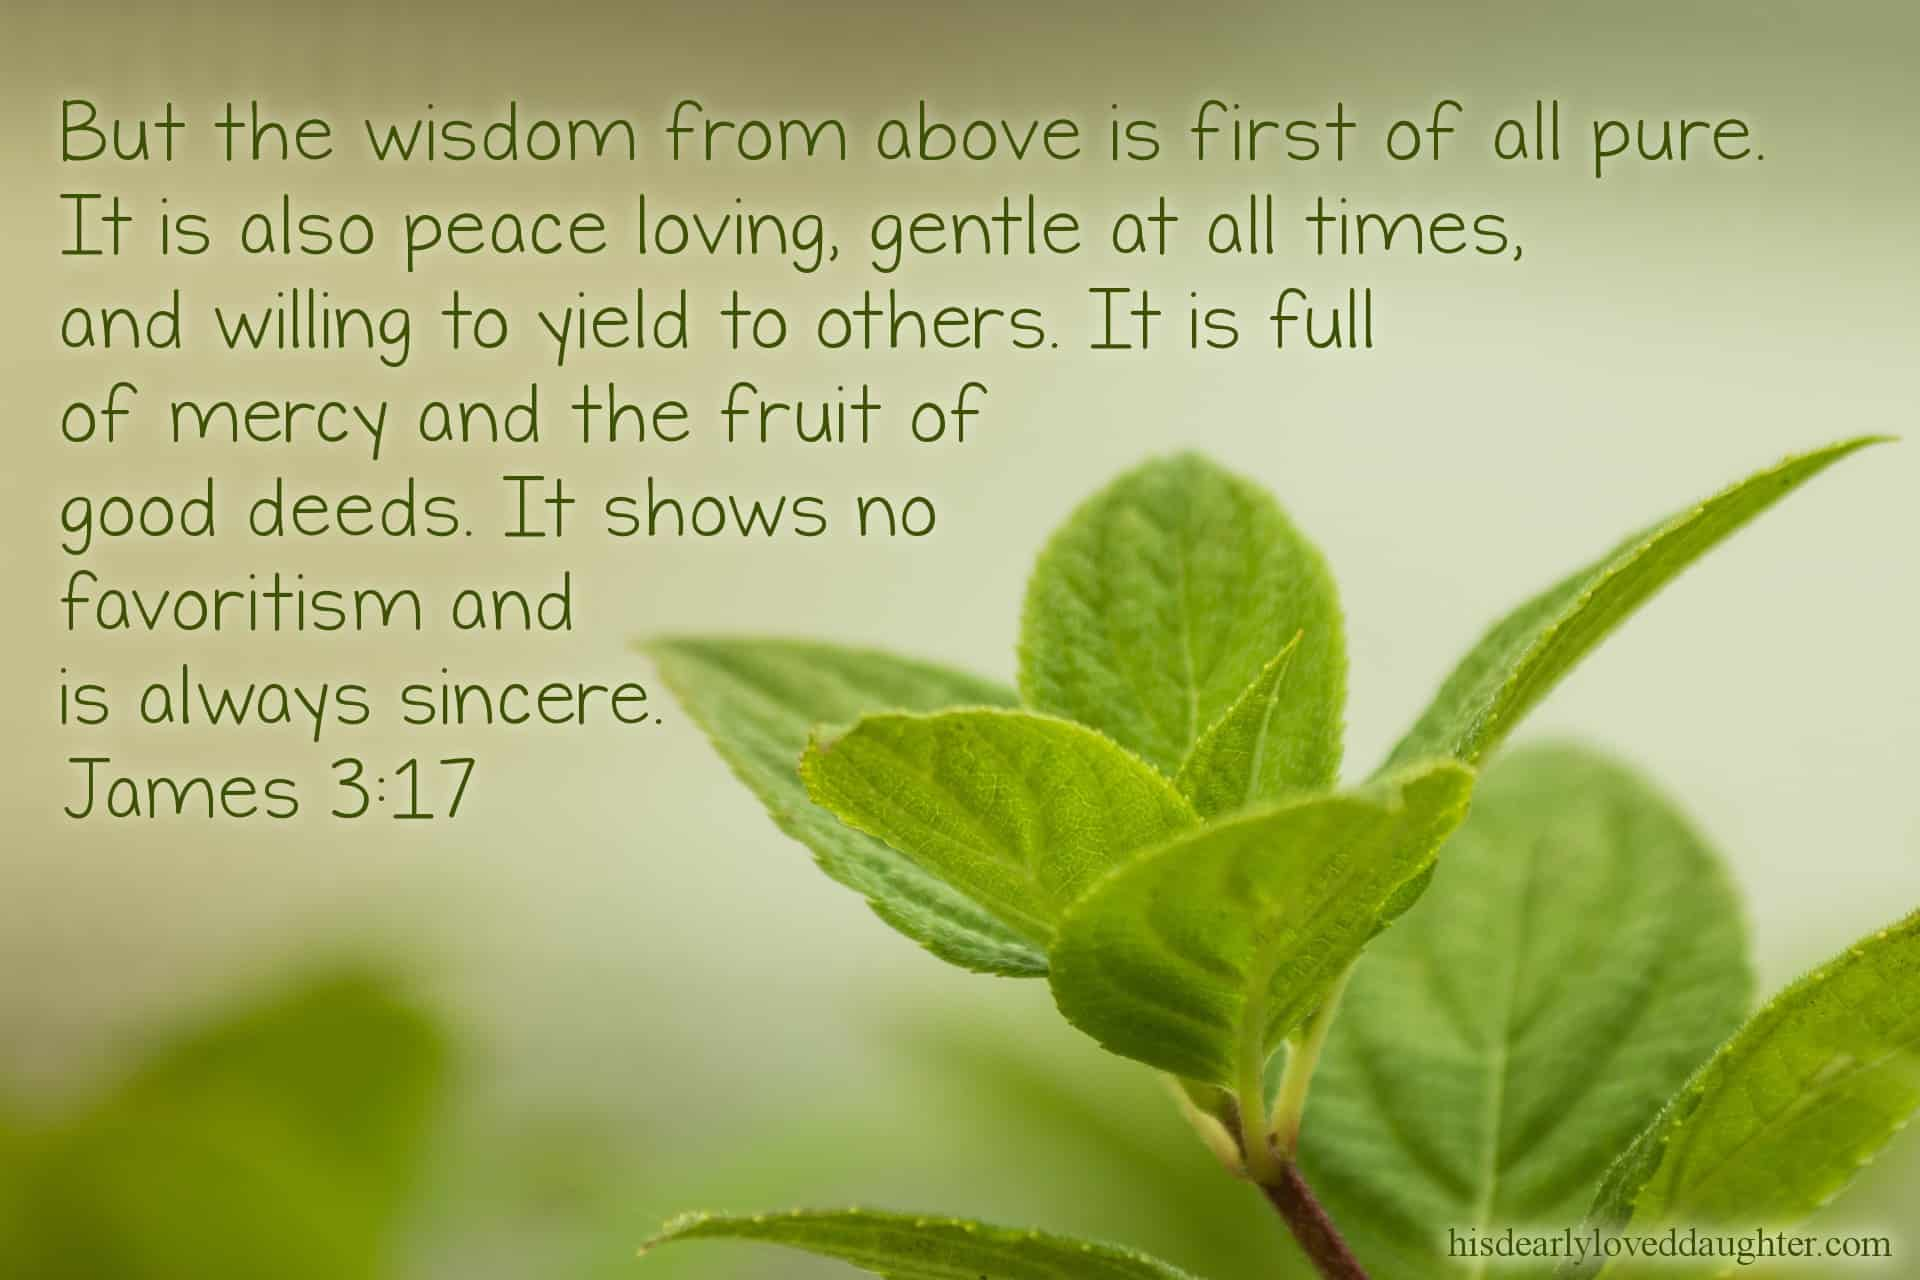 But the wisdom from above is first of all pure. It is also peace loving, gentle at all times, and willing to yield to others. It is full of mercy and the fruit of good deeds. It shows no favoritism and is always sincere. James 3:17 (Jonah Bible story)